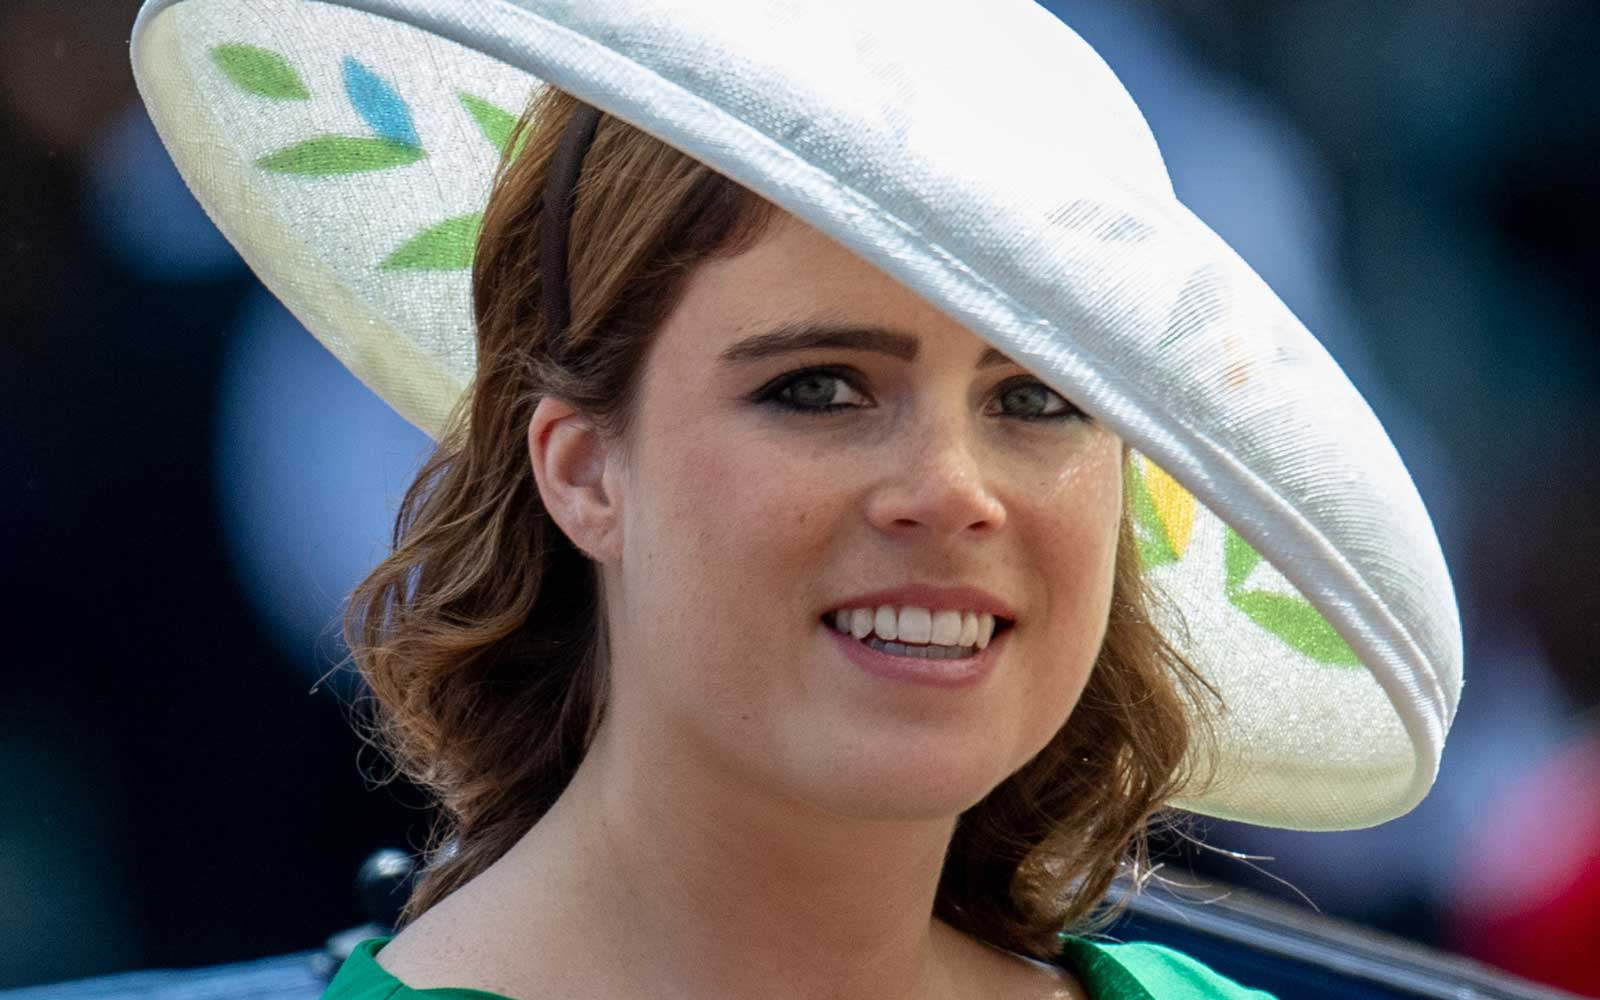 How to Watch Princess Eugenie's Royal Wedding Live in the U.S.